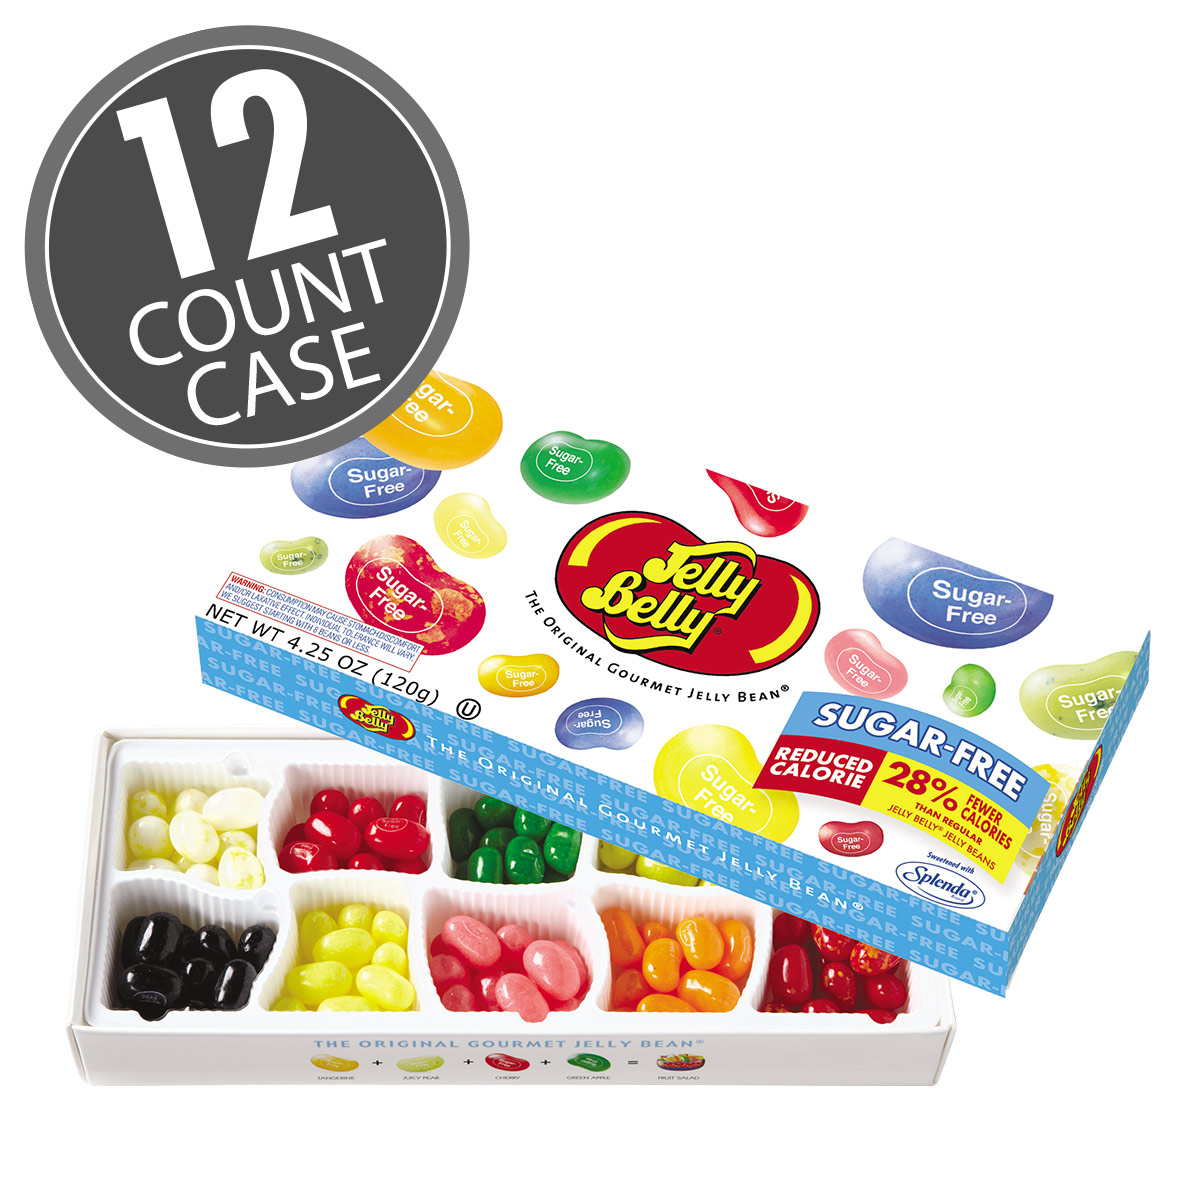 10-Flavor Sugar-Free Jelly Beans Gift Box - 12 Count Case